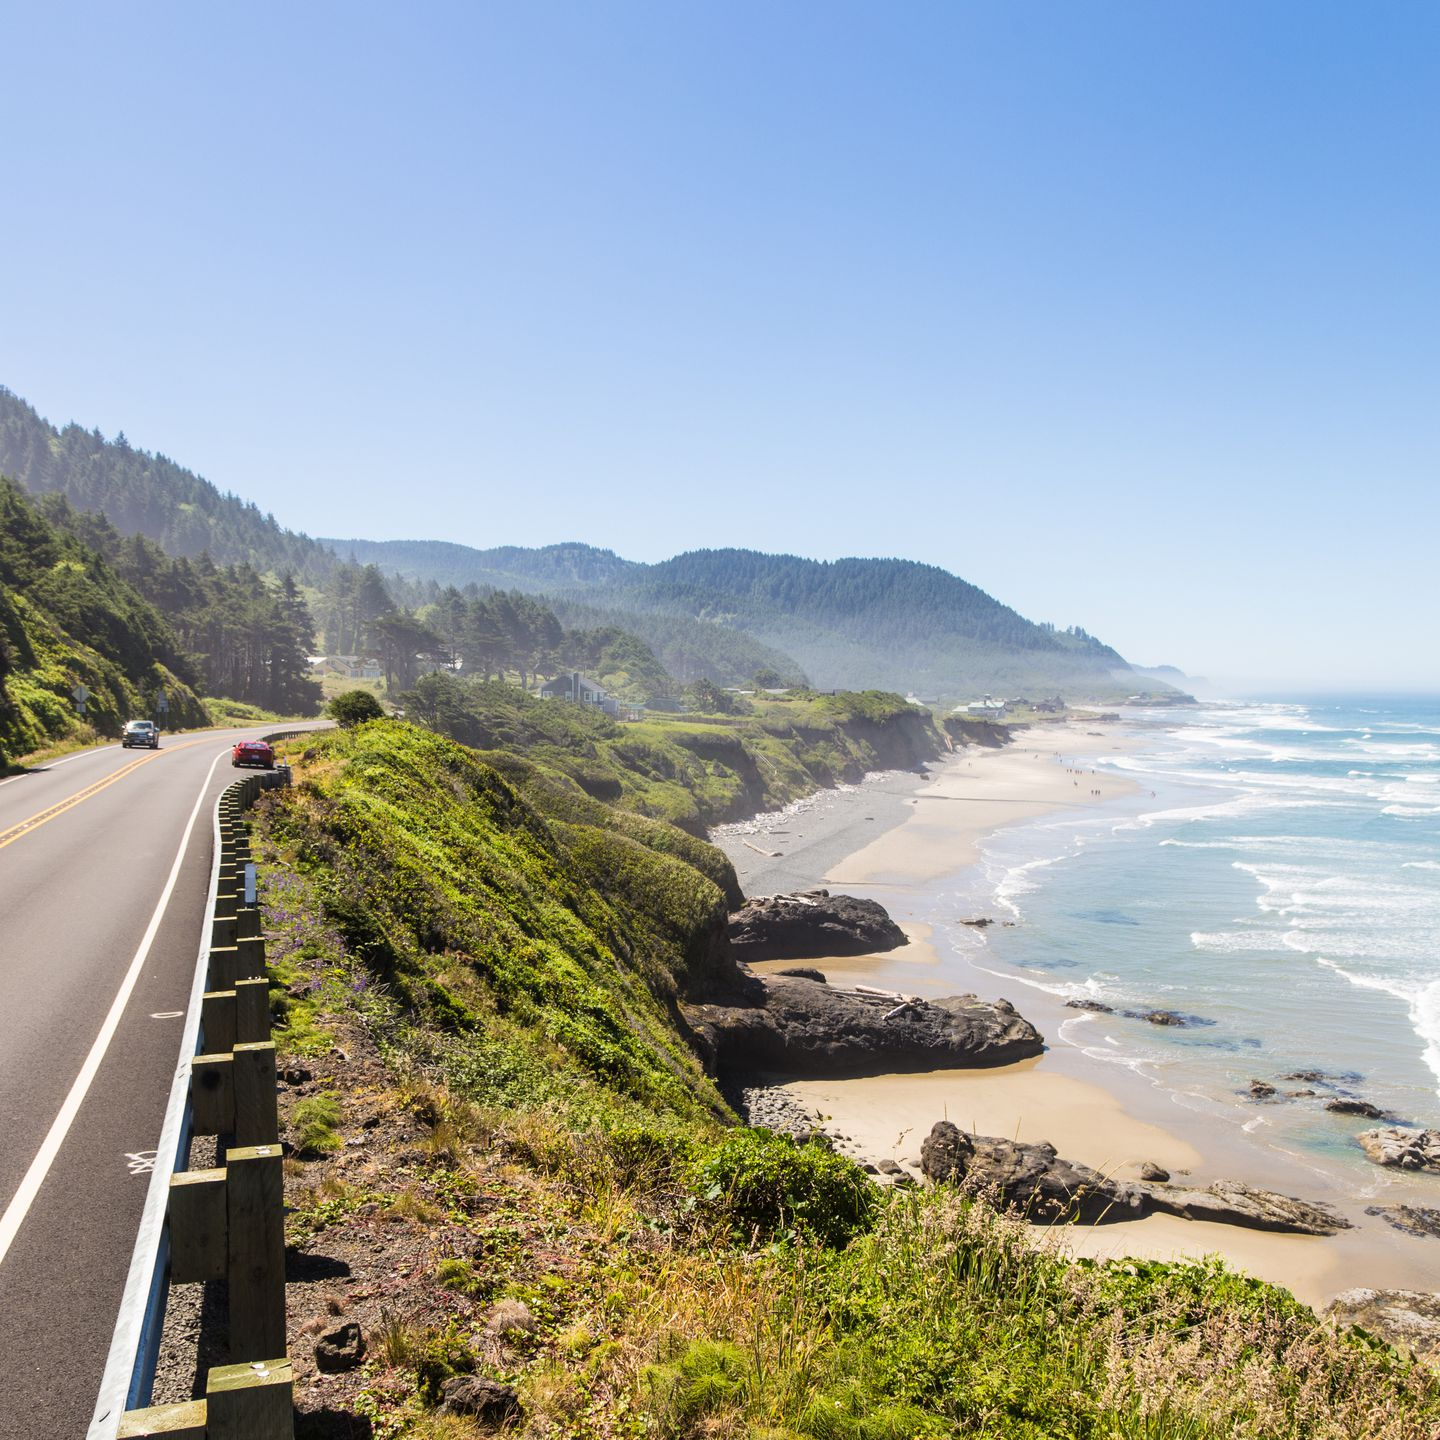 Los Angeles to San Francisco on the Pacific Coast Highway